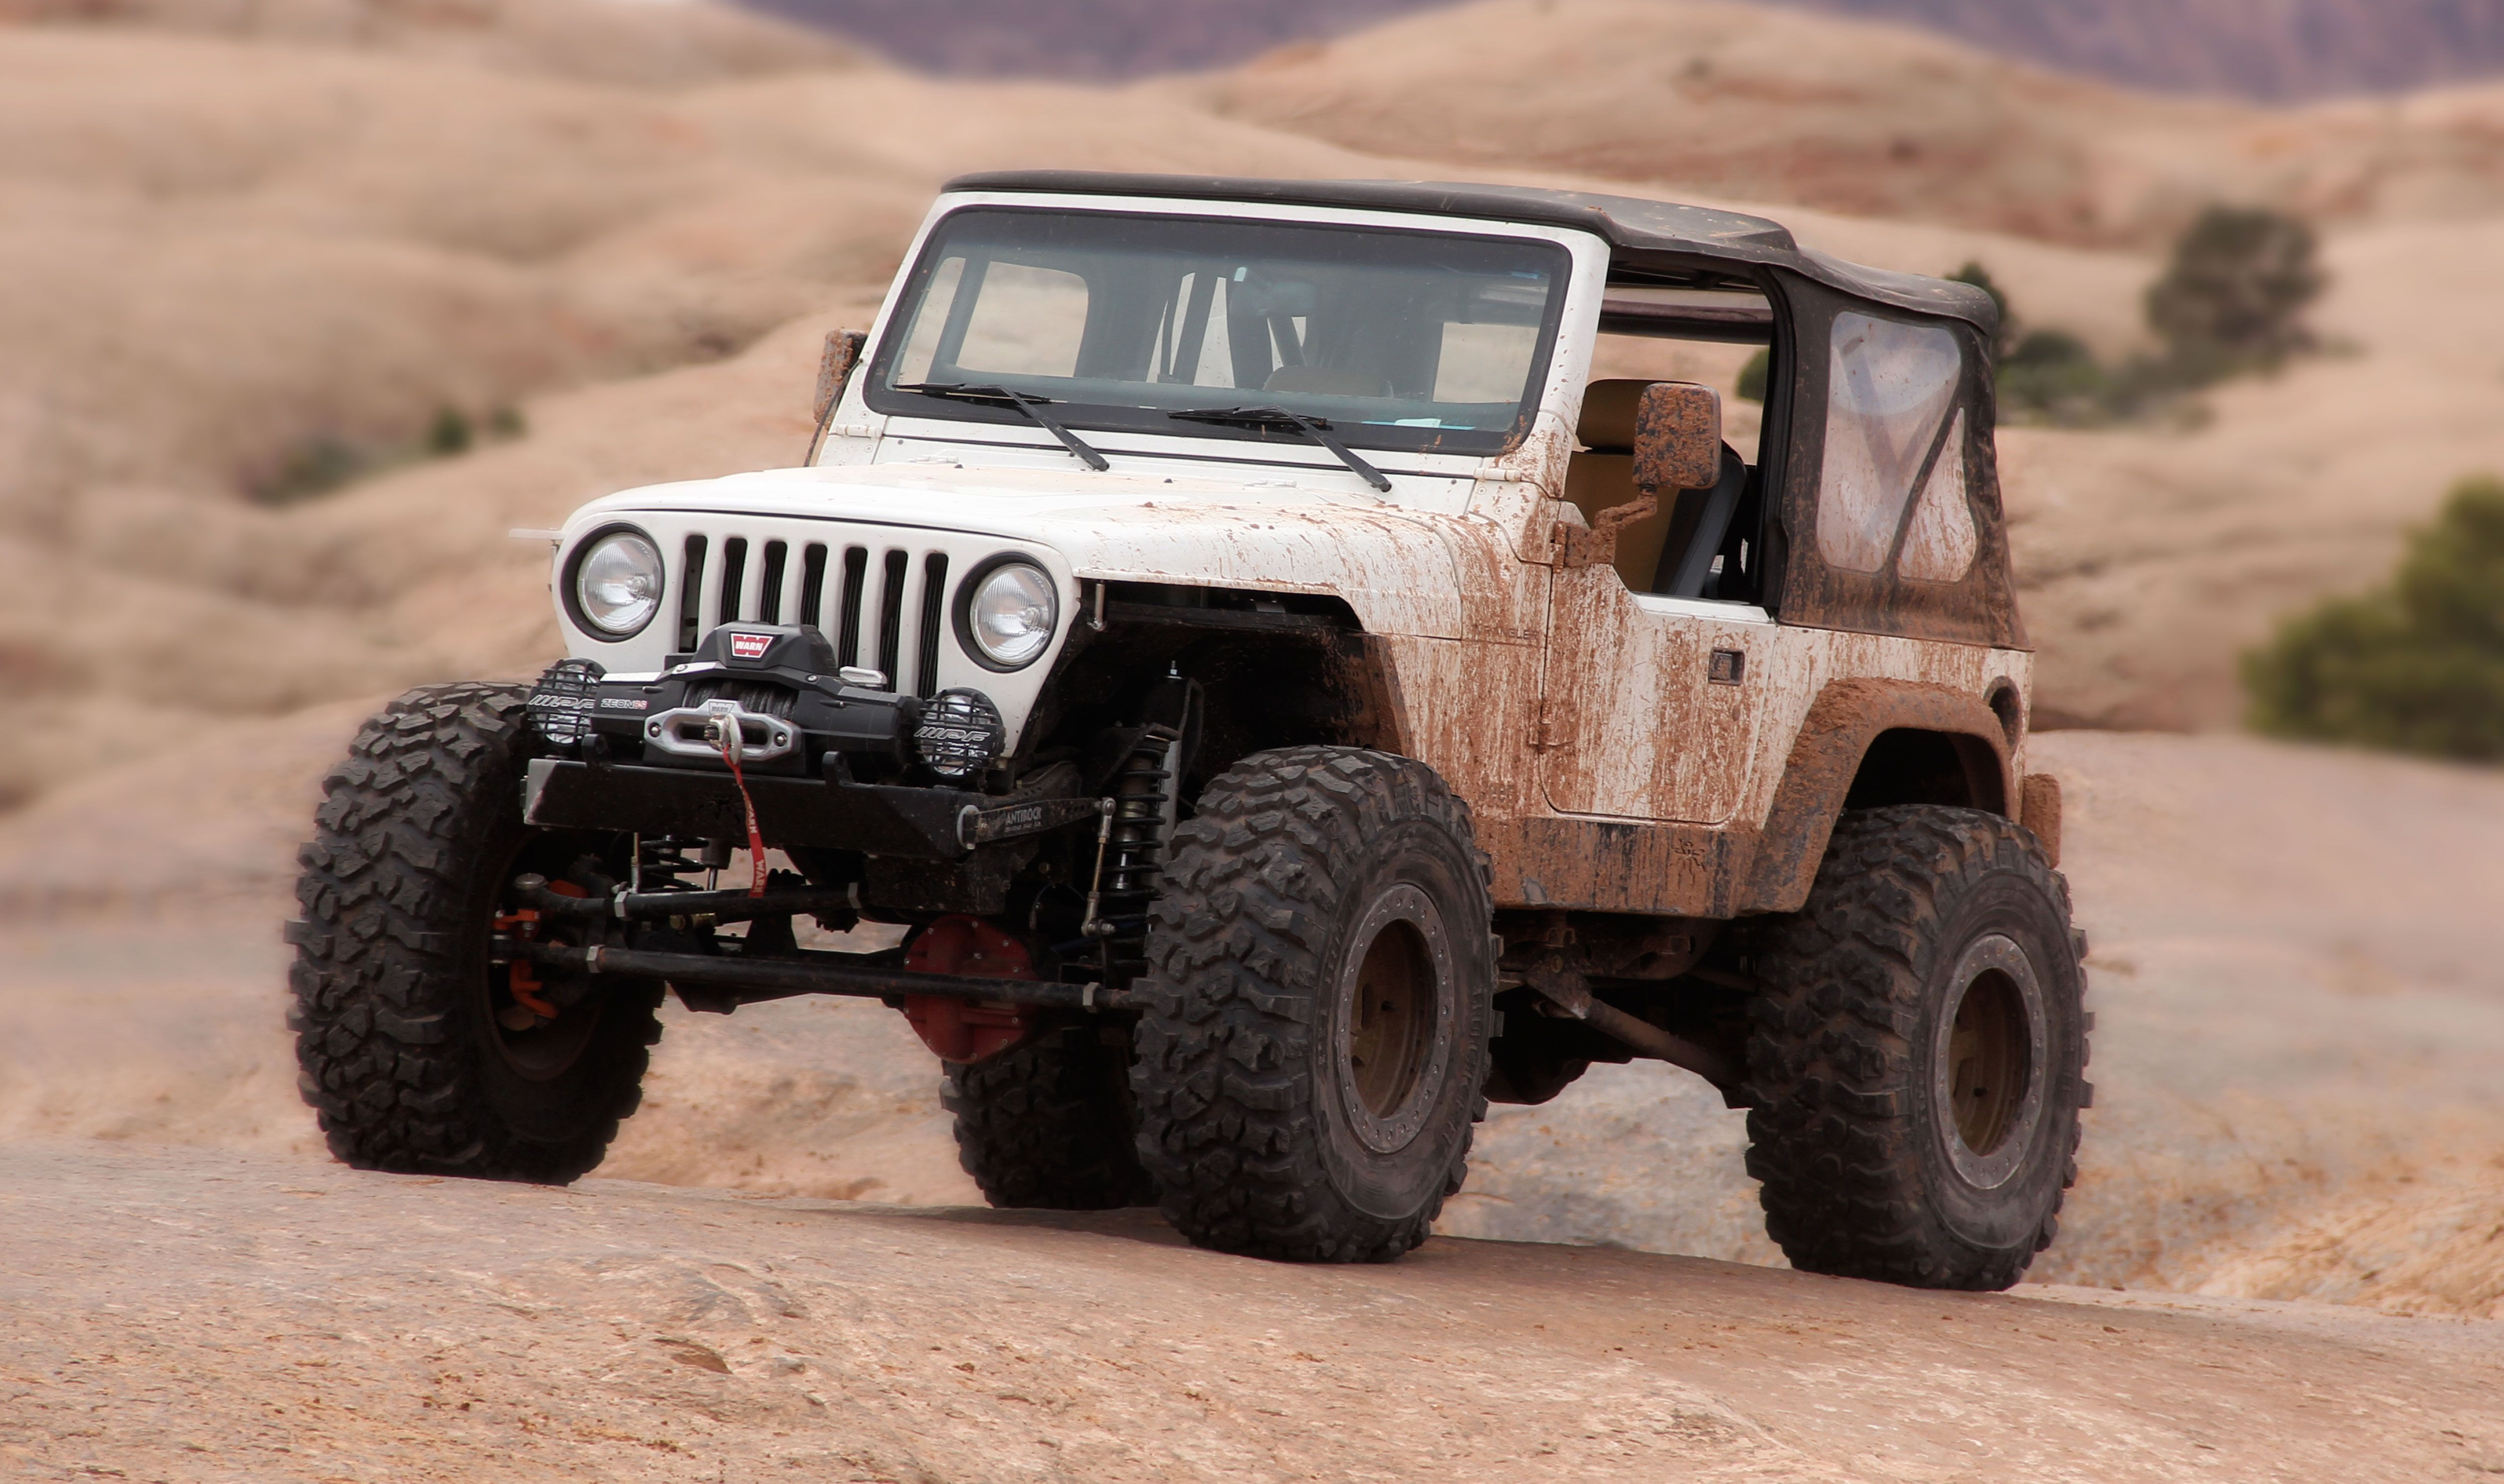 The Dirt Every Day Show Took This Unmolested Four Cylinder Jeep Wrangler And Built It In 14 Days For Annual Moab Easter Safari Keeping Cente